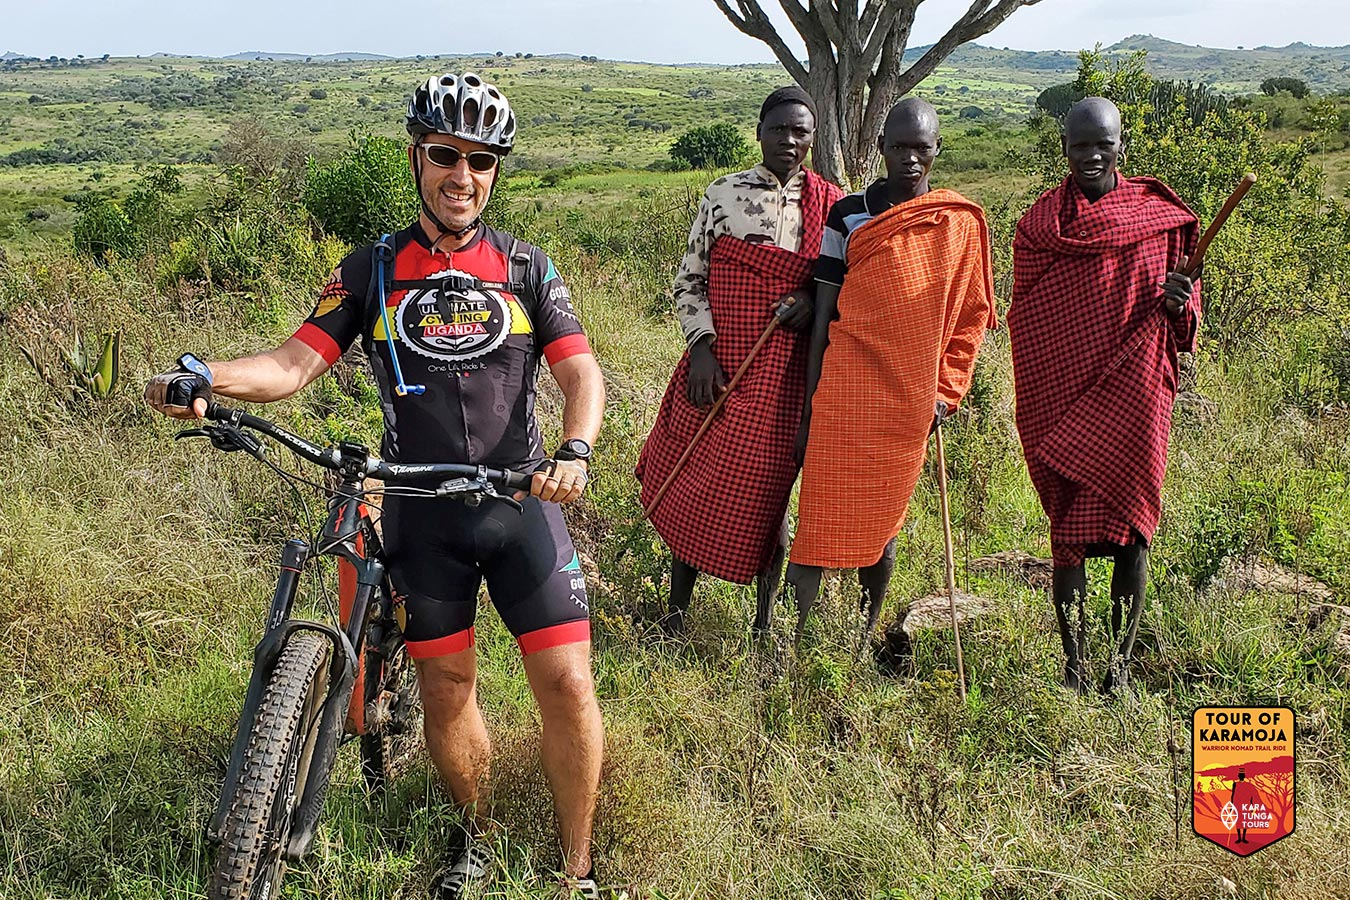 kara-tunga-tour-of-karamoja-ik-tribe-morungole-bike-event-uganda